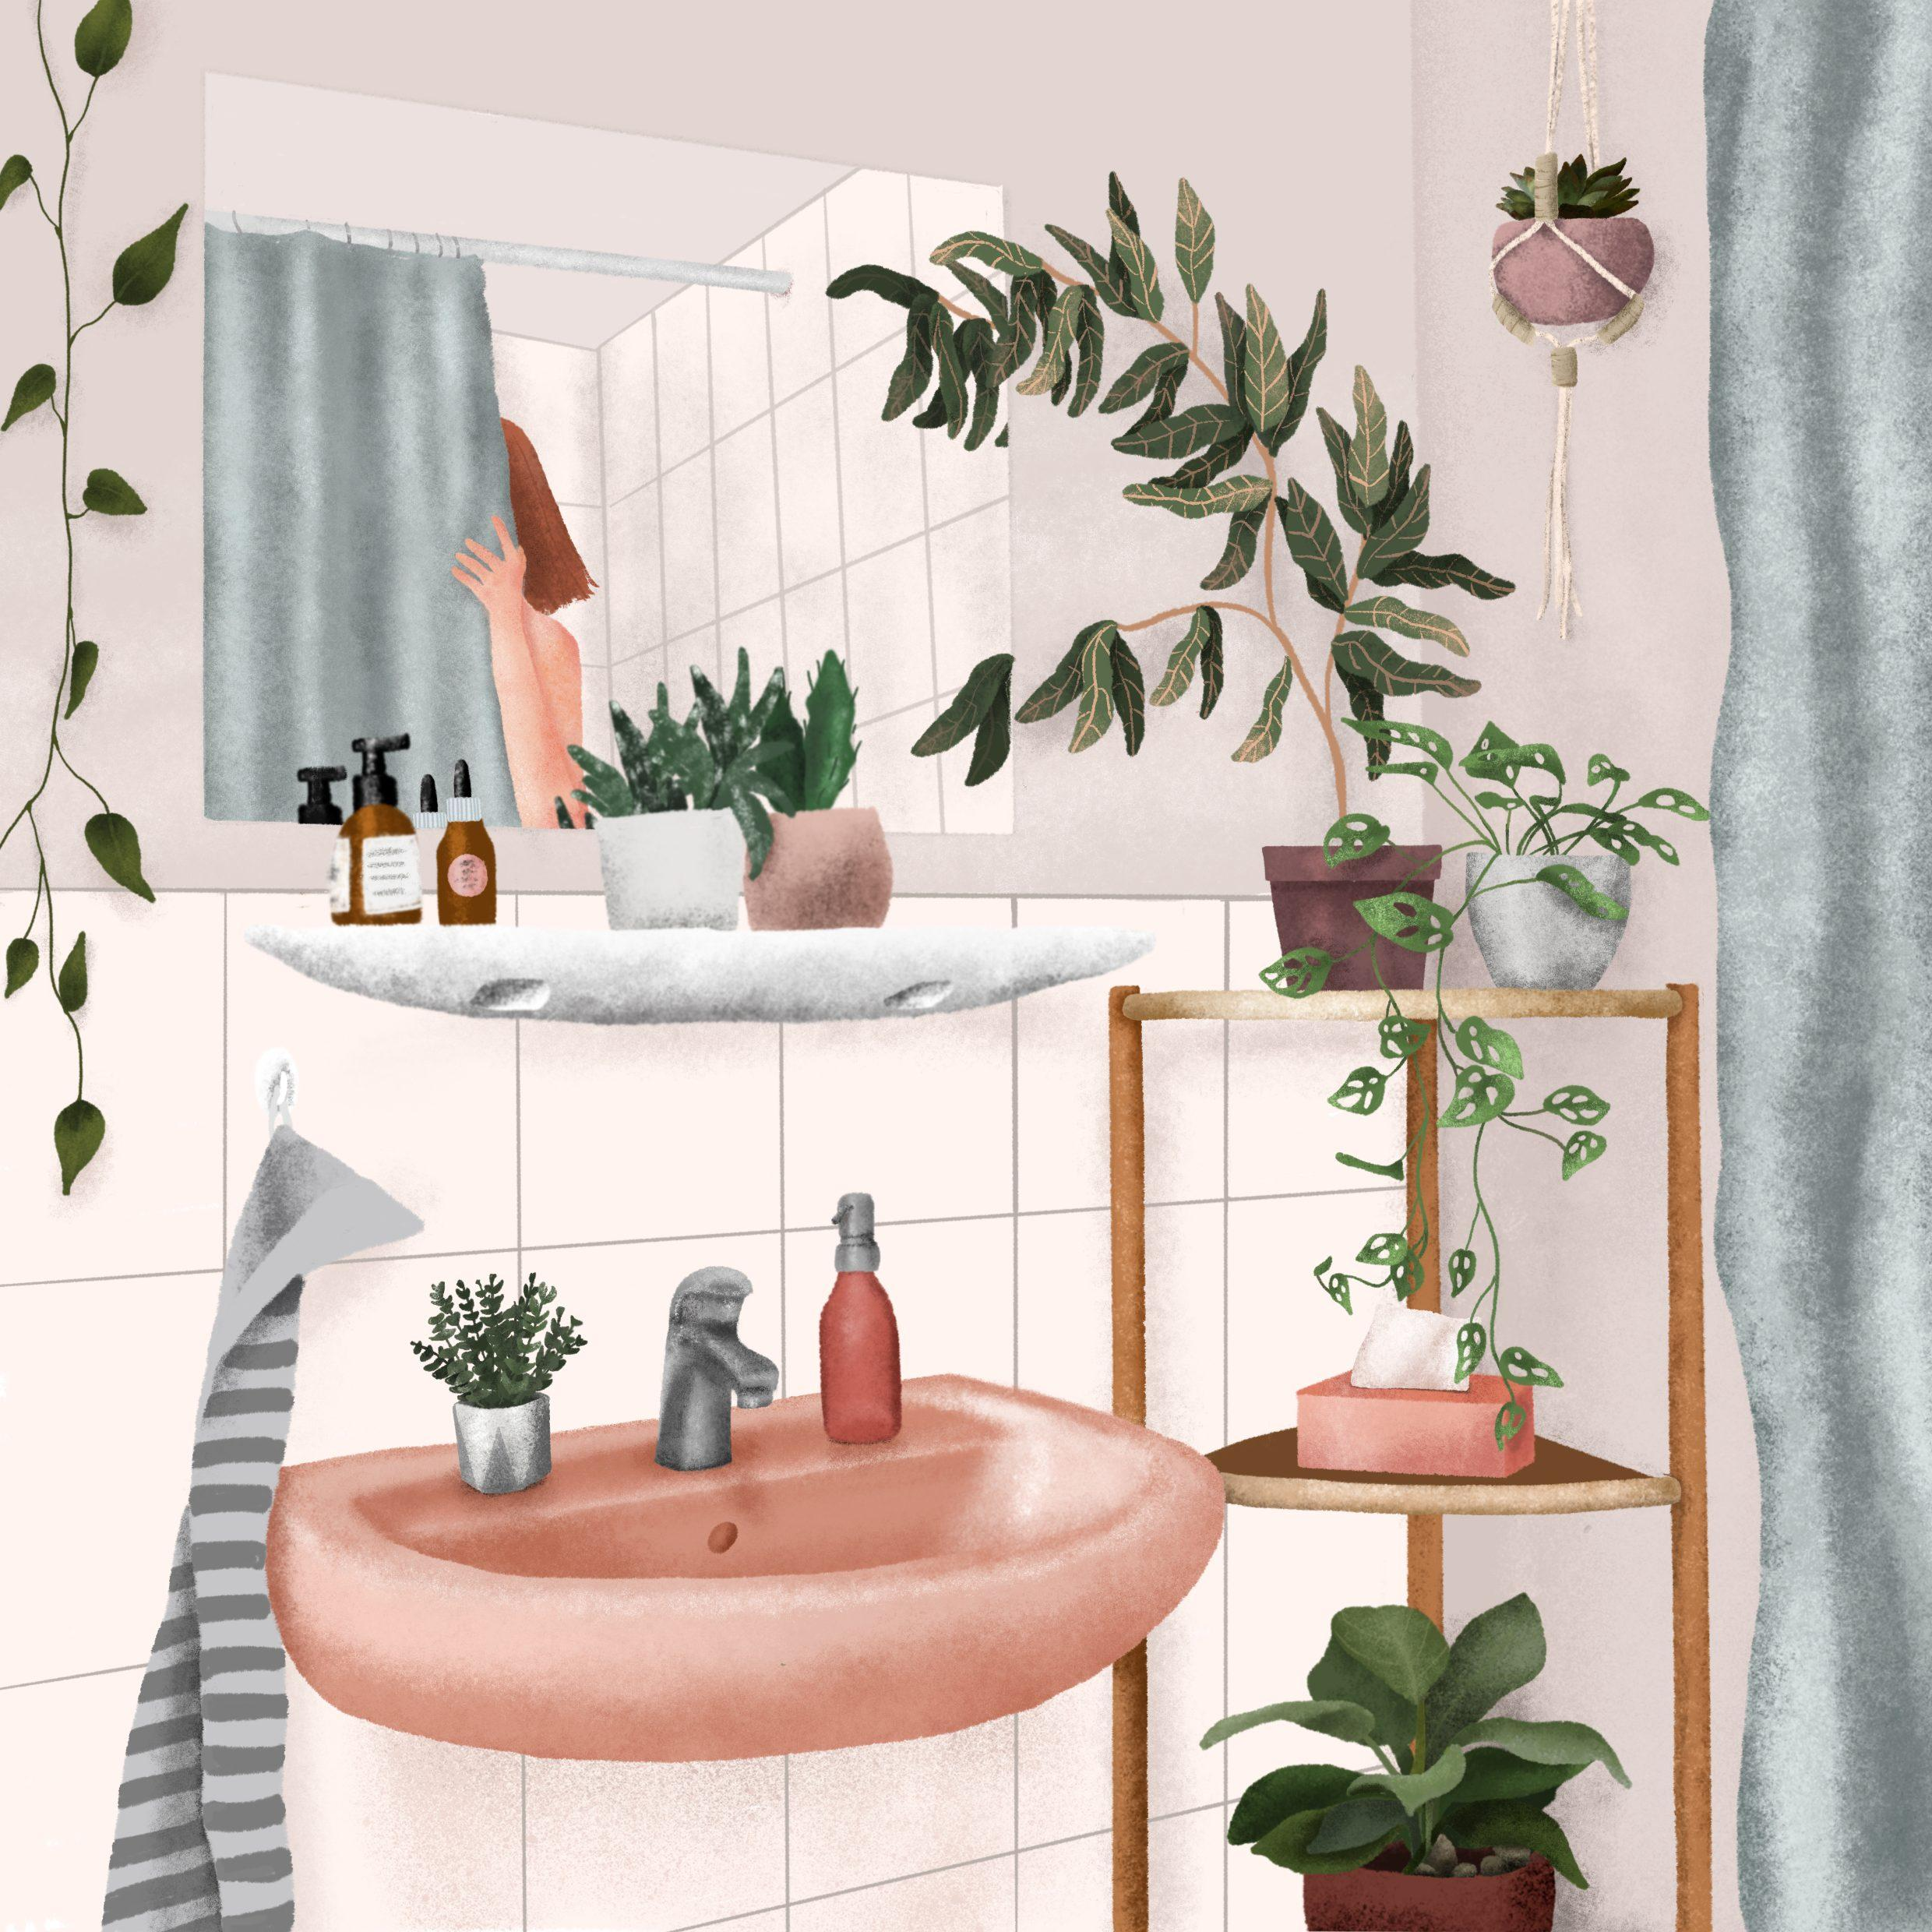 Beautyday :) #badezimmer #deko #bathroom #bad #illustration #plants #pflanzen #frühling #green